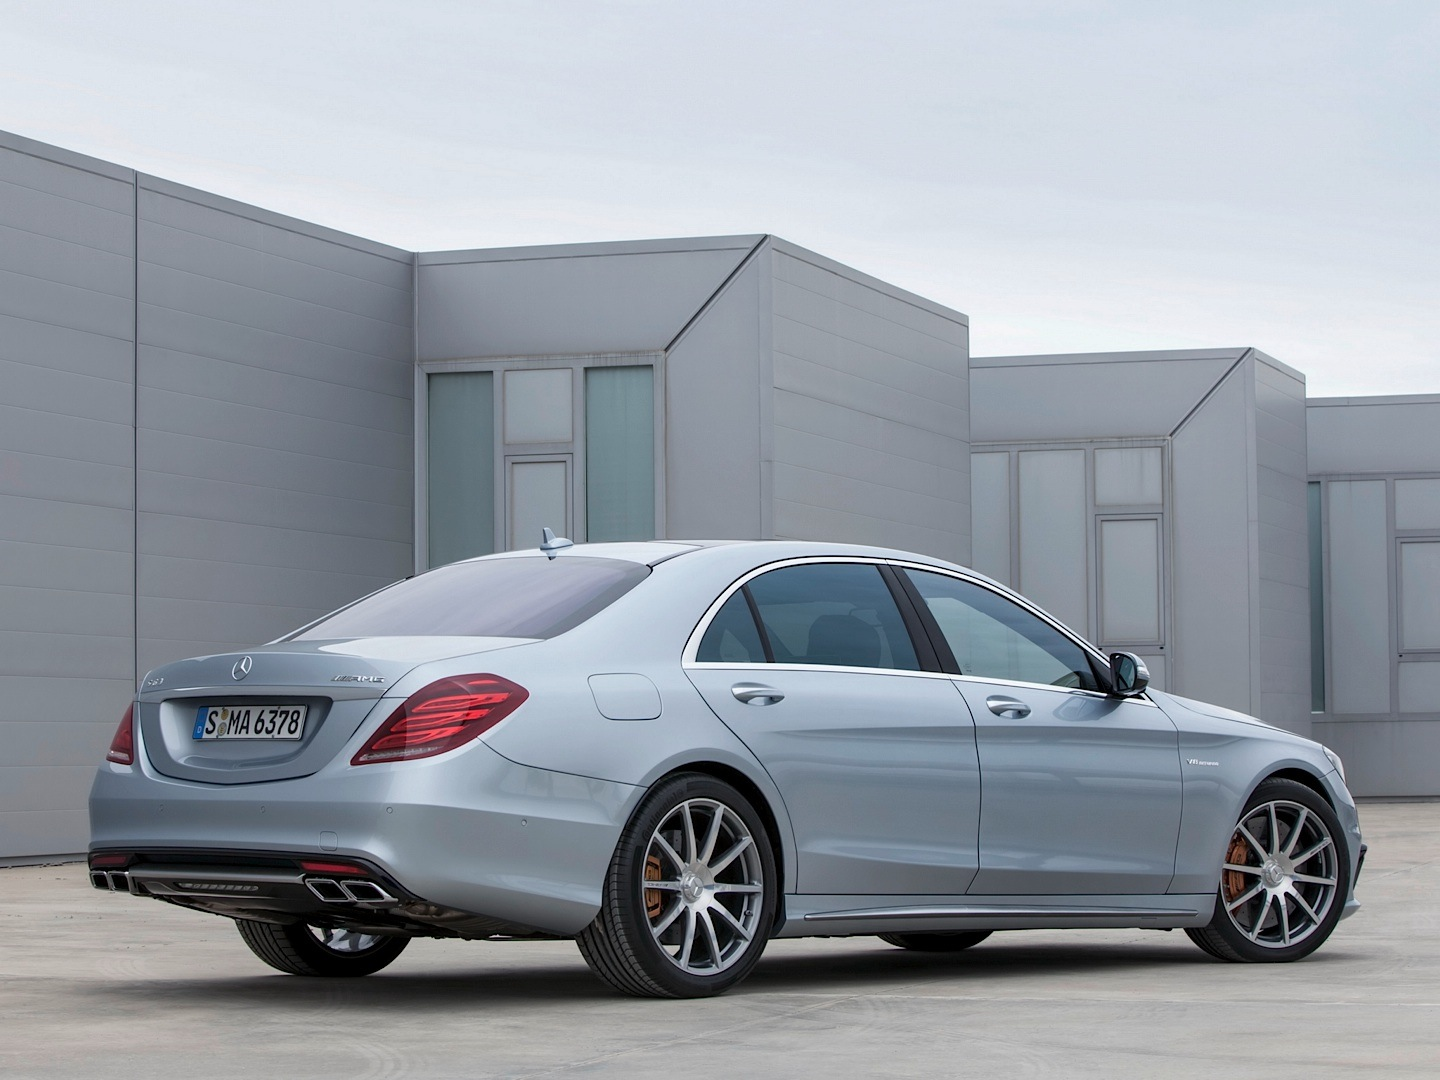 The mercedes benz s63 amg gets its pricing sorted out for for Mercedes benz 563 amg